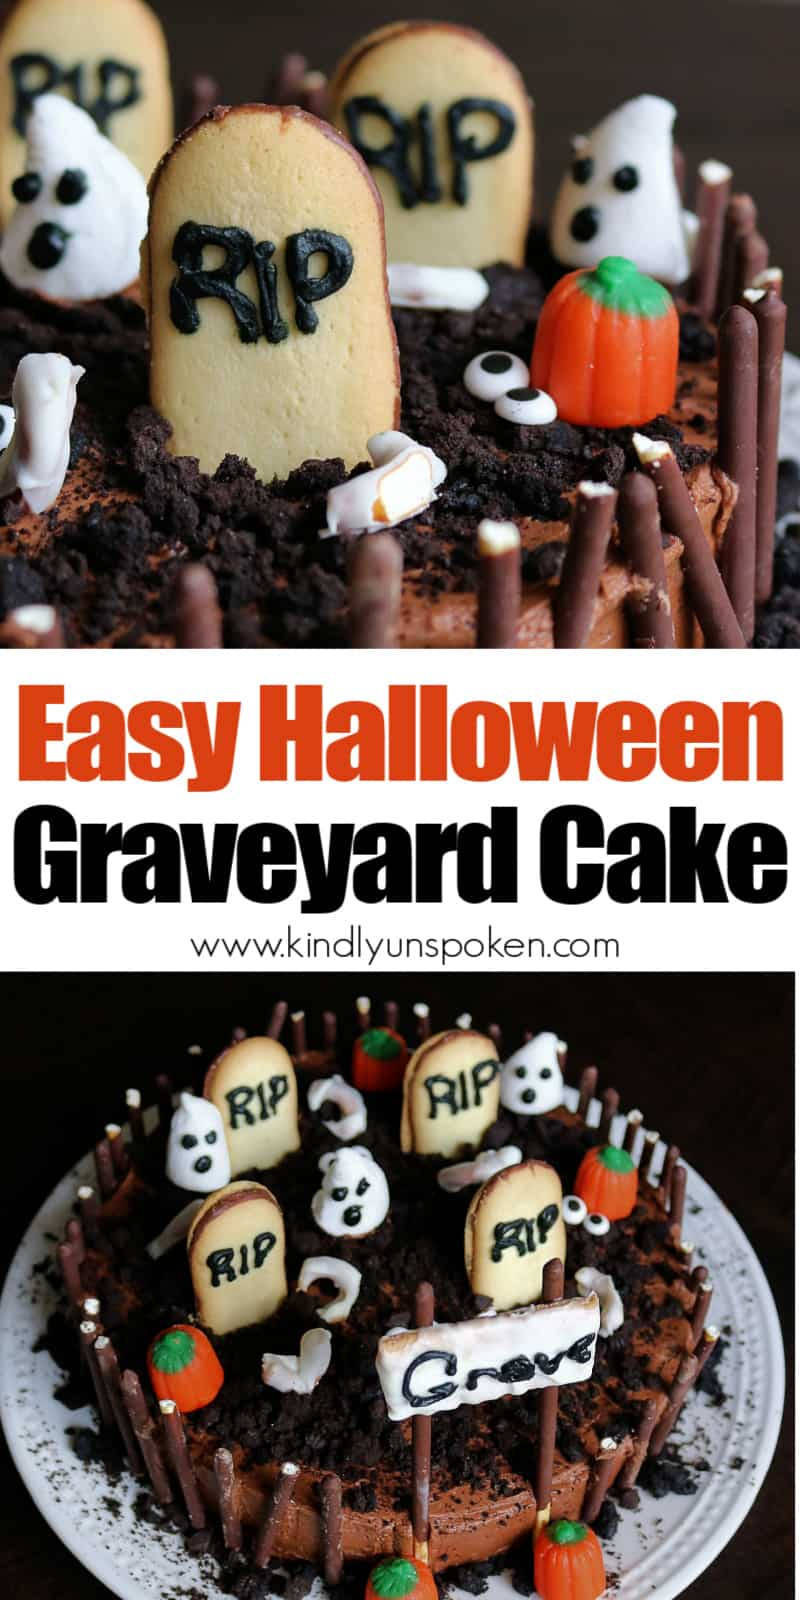 Learn how to create this Easy Halloween Graveyard Cake for your next Halloween party! This Graveyard Cake is made with a boxed chocolate cake mix, delicious homemade chocolate buttercream frosting, and spooky and fun DIY cake decorations like tombstone cookies, marshmallow ghosts, Oreo dirt, pretzel bones, and a chocolate stick fence. Kids and adults will love it! #halloweencake #graveyardcake #diycake #kidscake